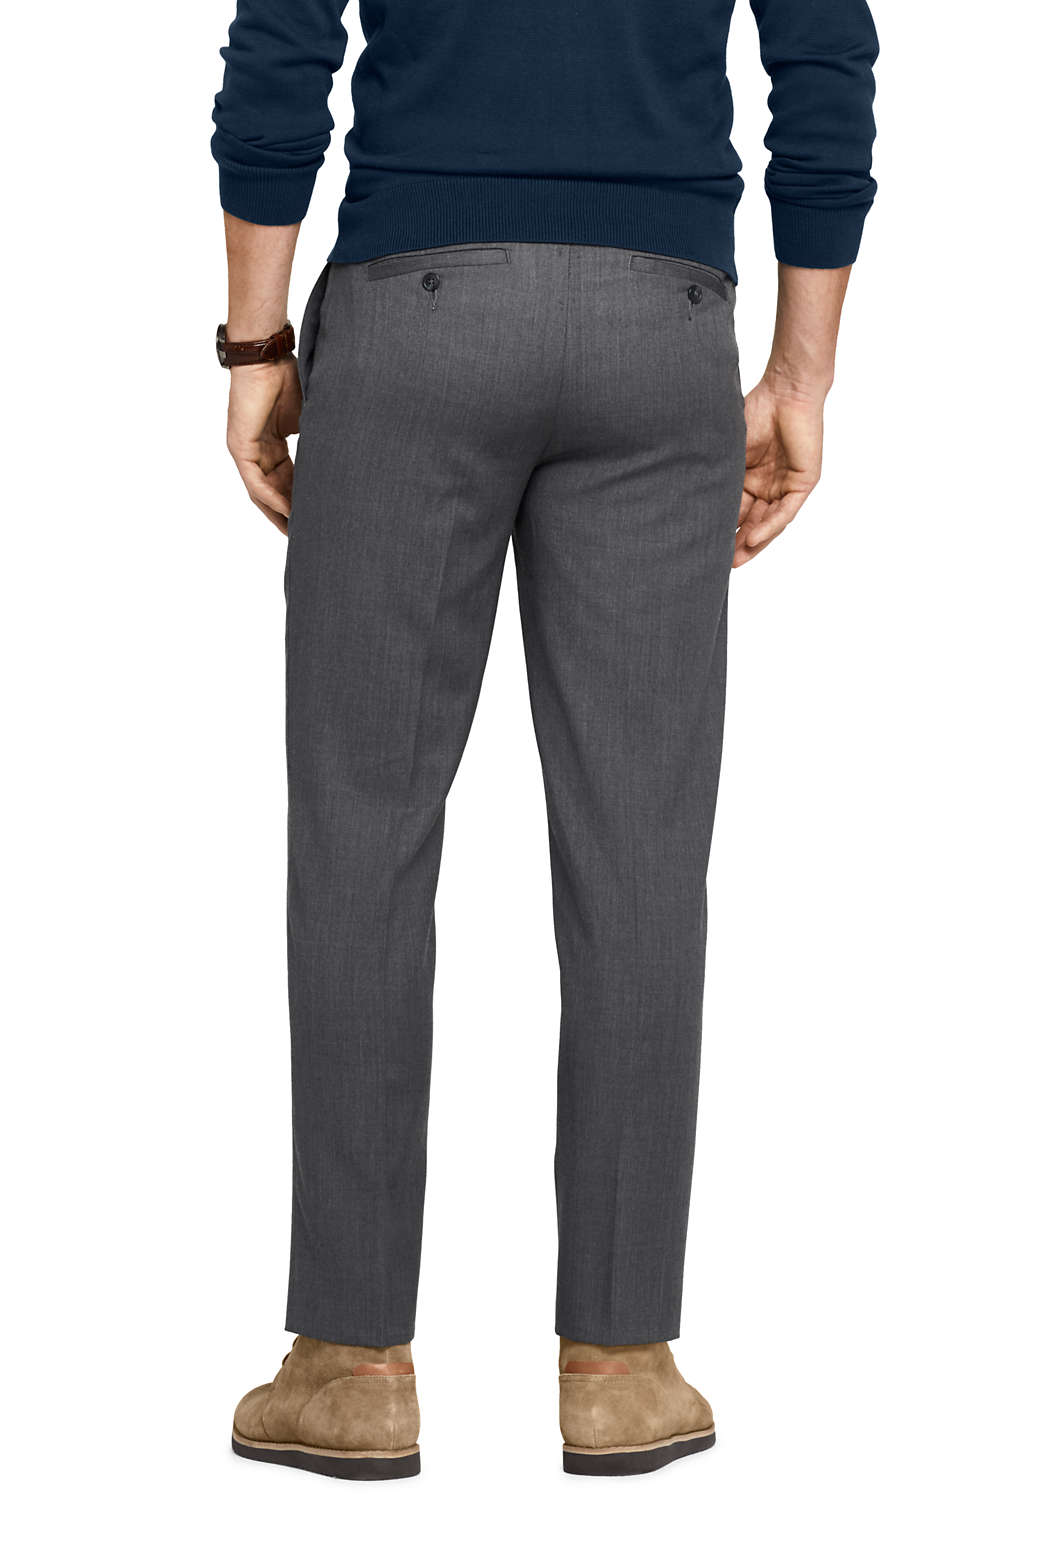 16c0190f Mens Wool Gabardine Dress Pants | Saddha